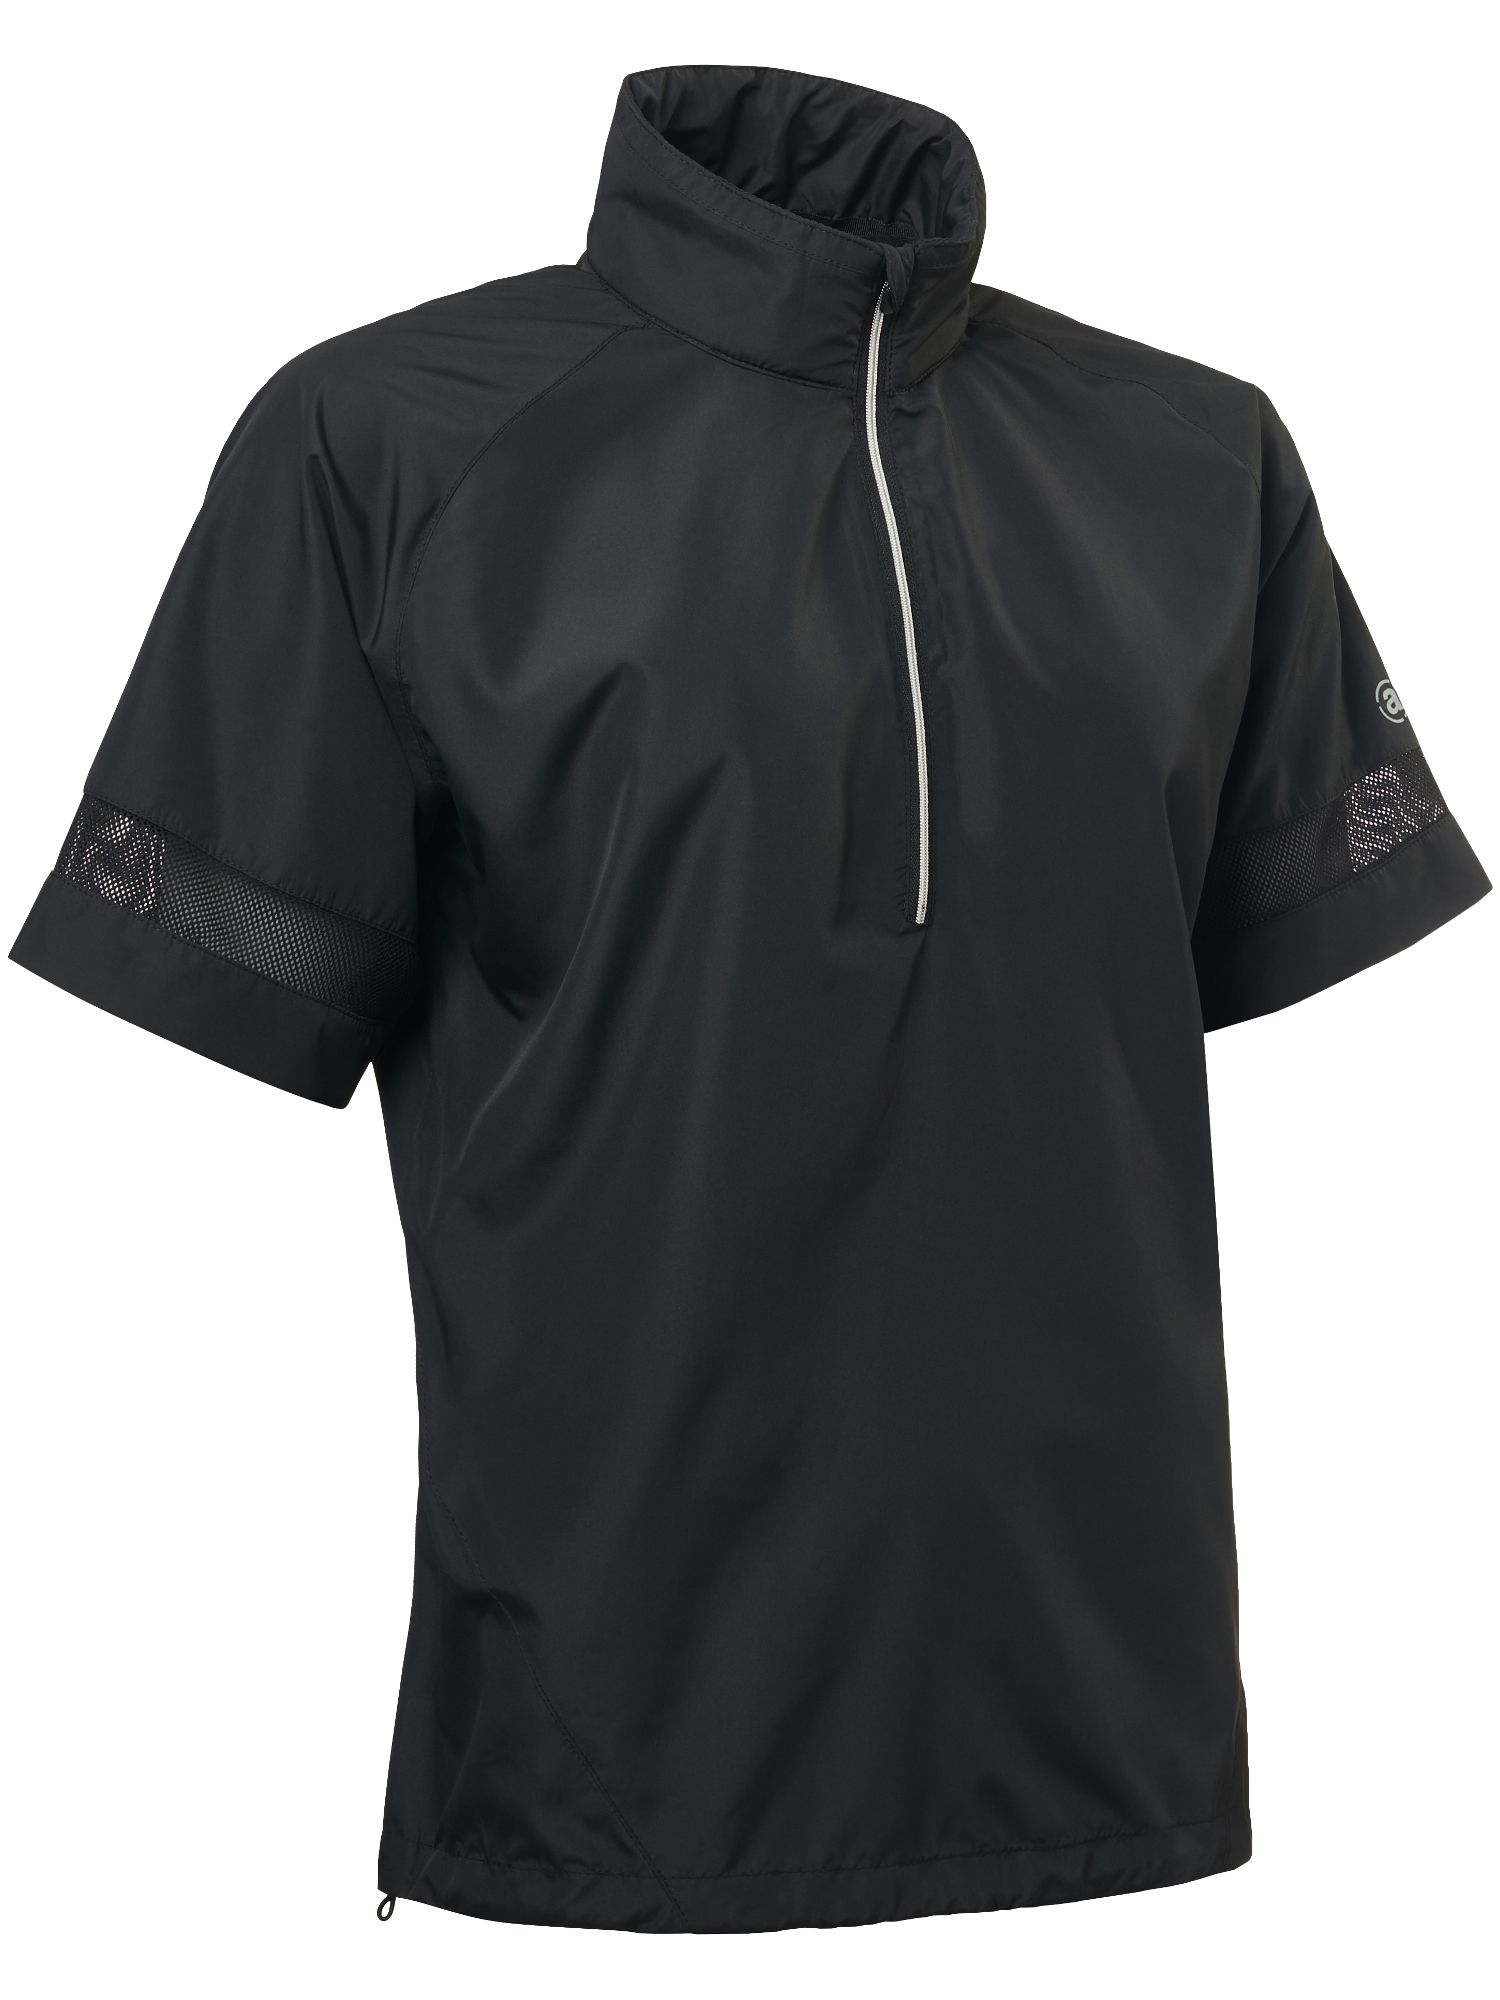 Abacus Glade Wind Shirt, Black